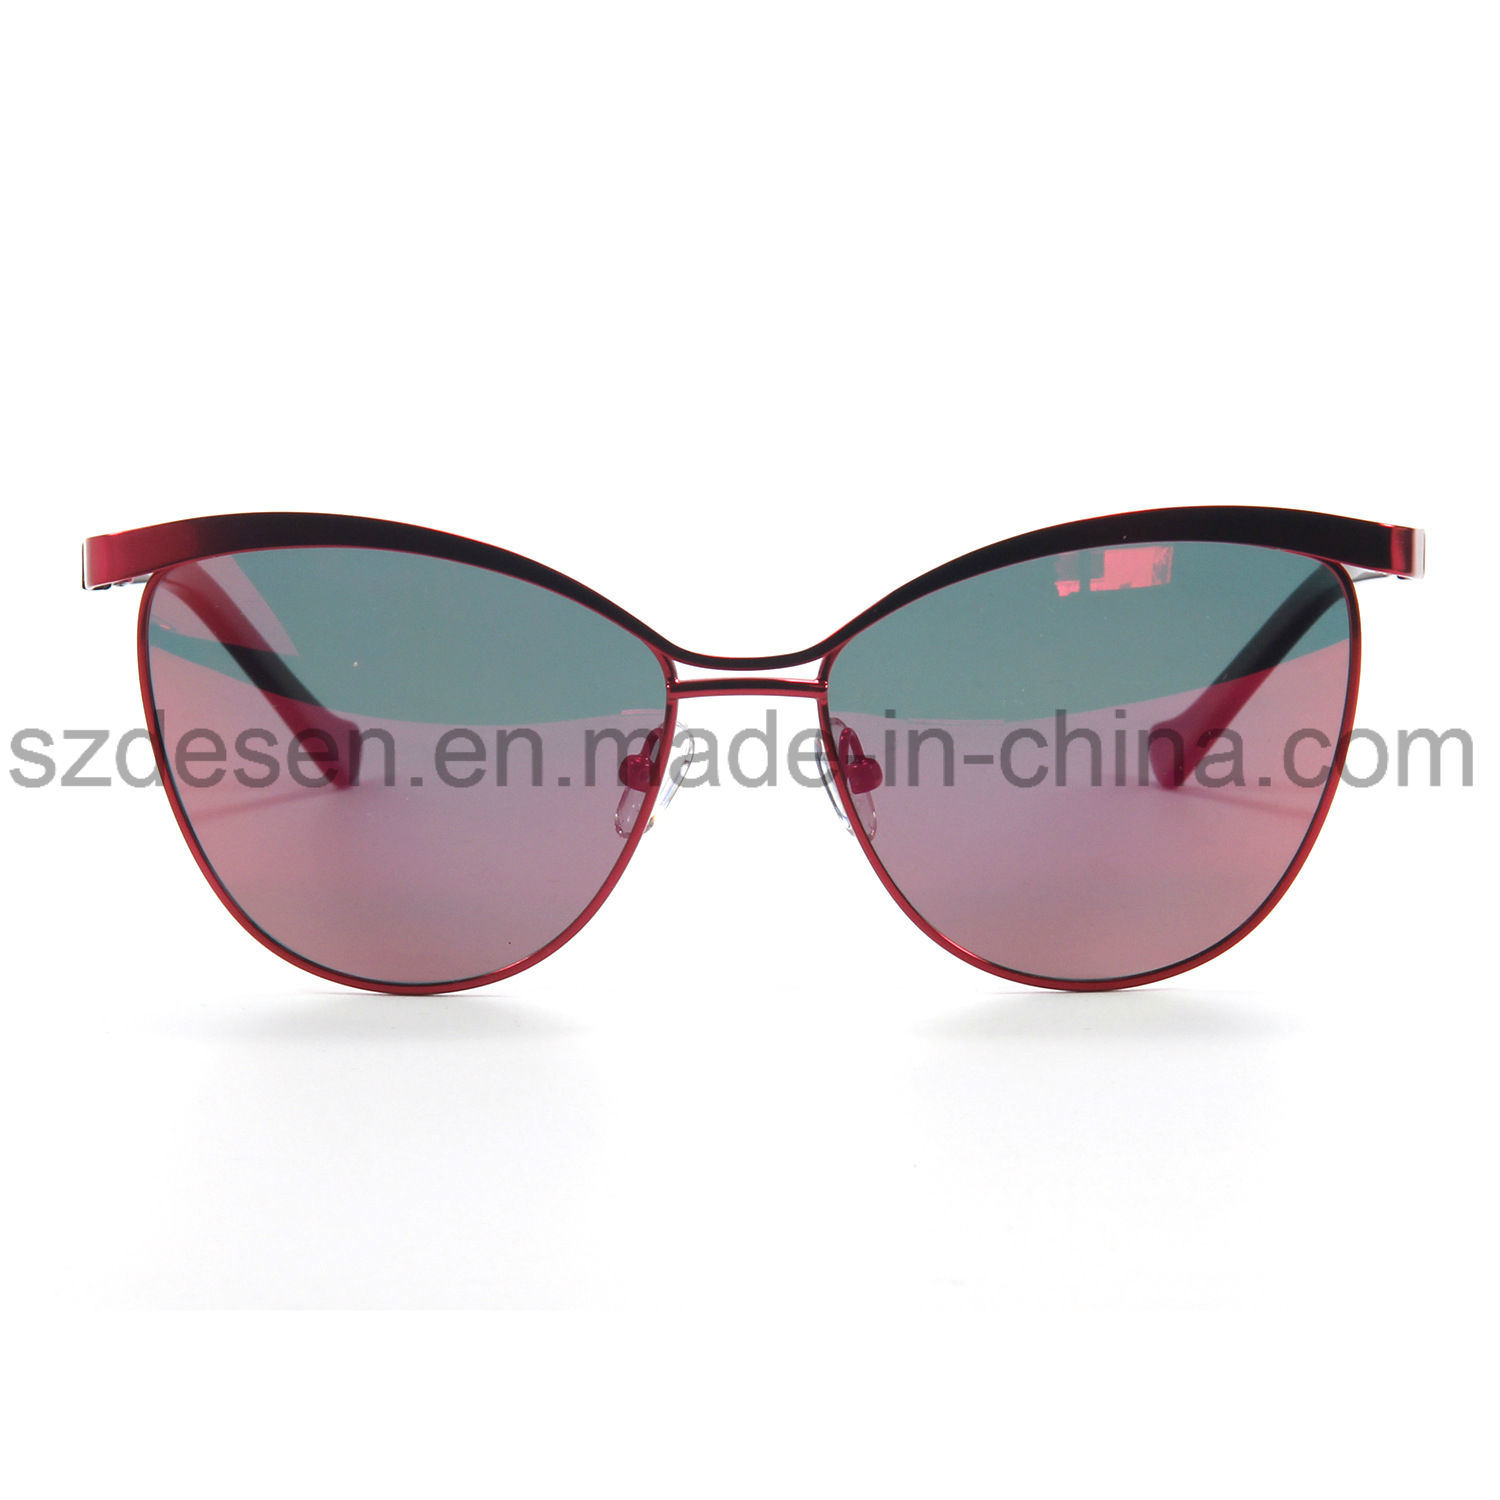 Fashionable Mirror Lens Eye Cat Polarized Sunglasses